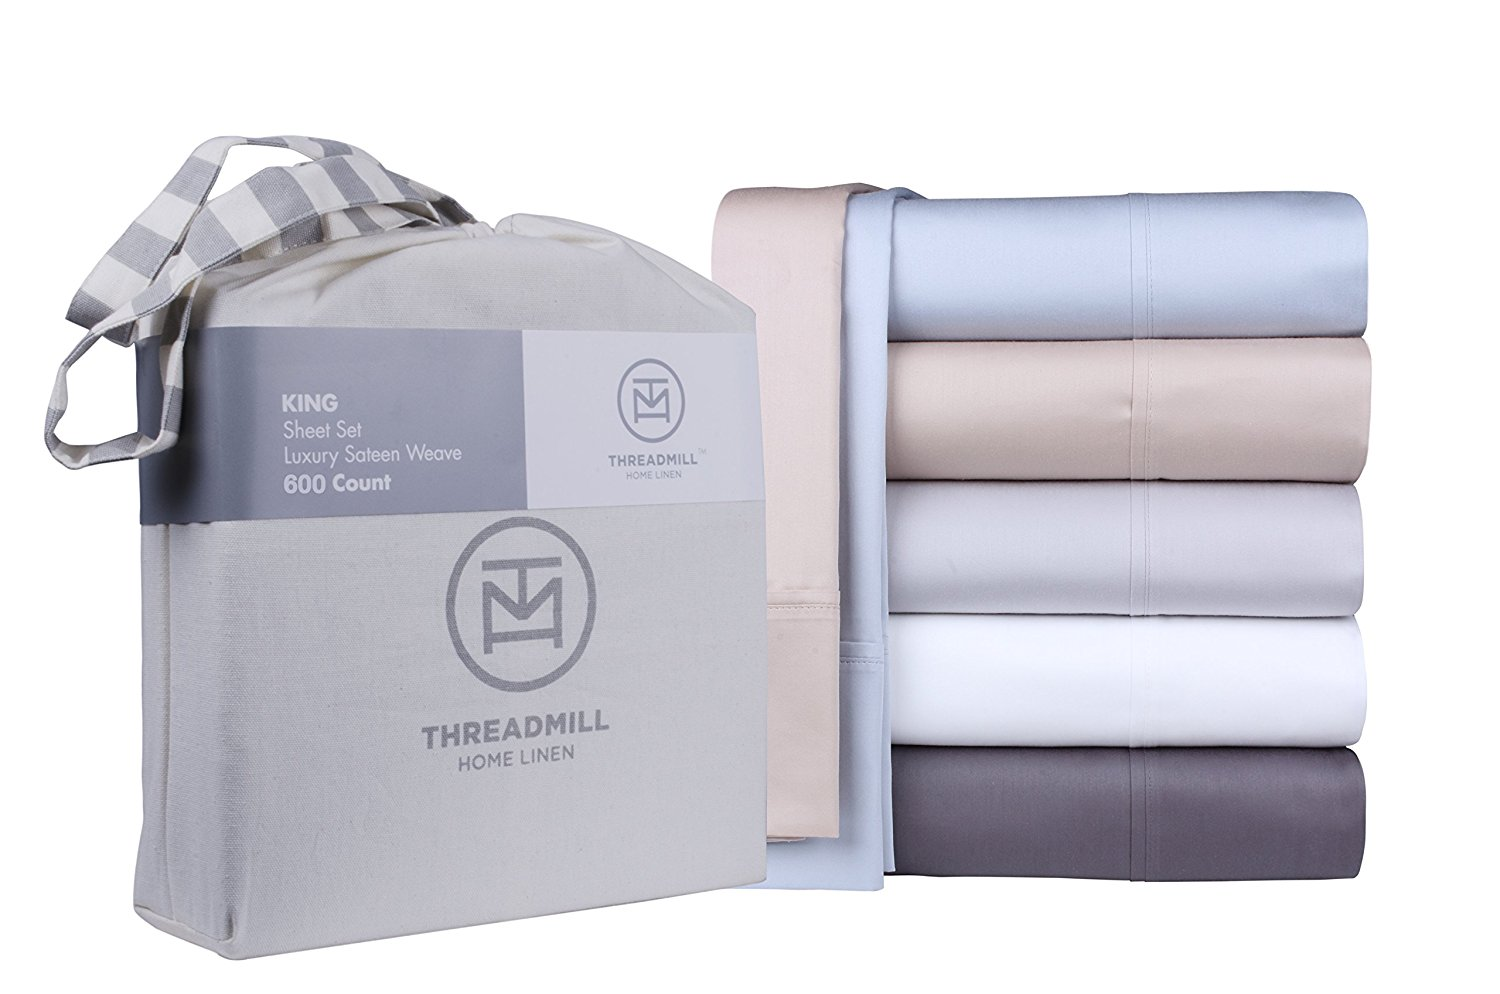 Image of Threadmill's 600 thread count sheet with extra long staple cotton - Best 600 Thread Count Sheets